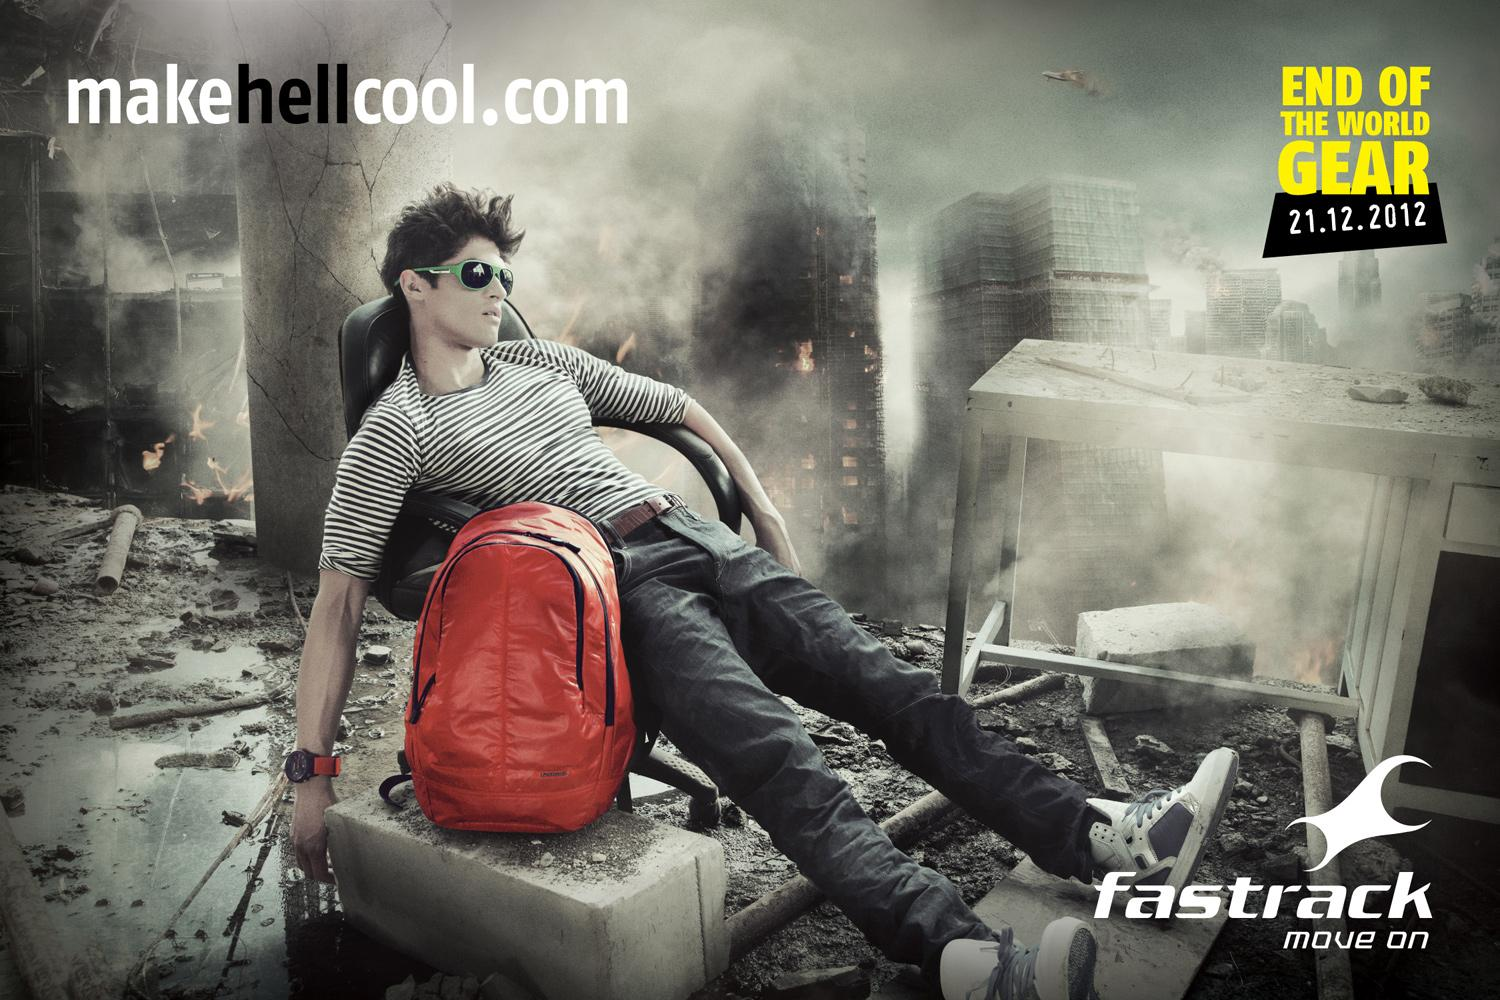 Fastrack Print Ad -  Make Hell Cool, 2